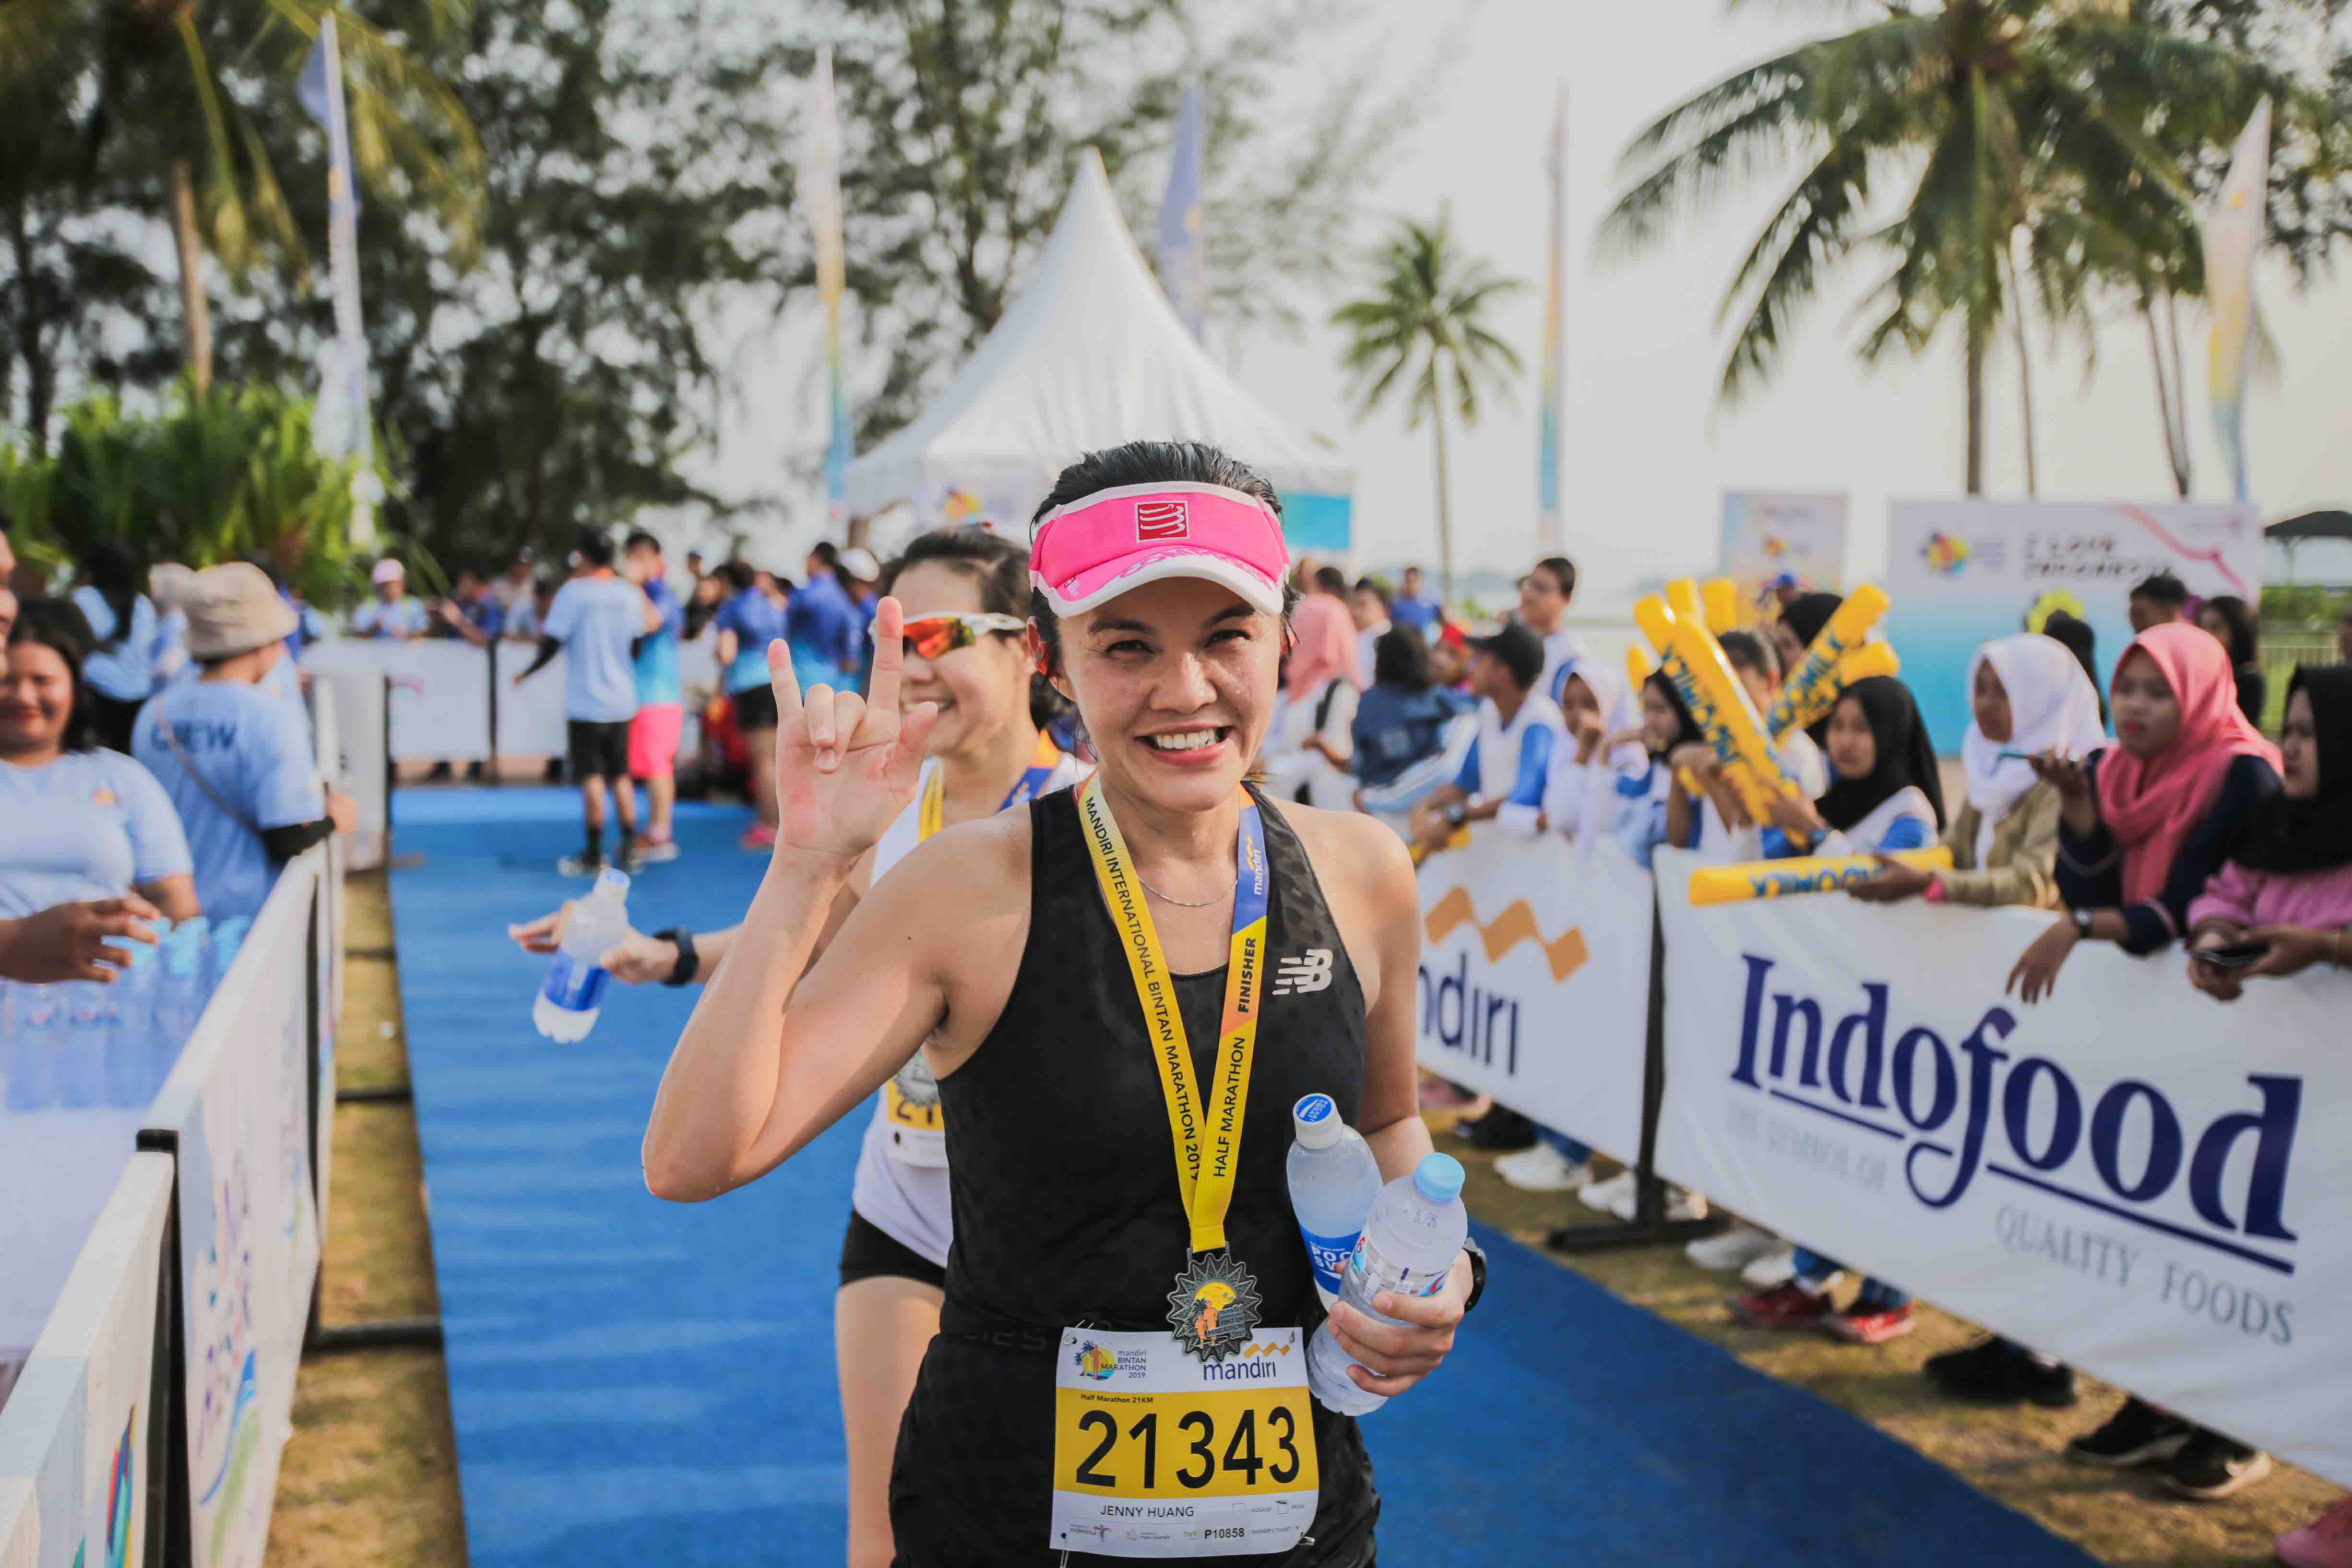 enny Huang, a seasoned marathoner and one of Mandiri Bintan Marathon's ambassador from Singapore participated in the 21km Half Marathon category